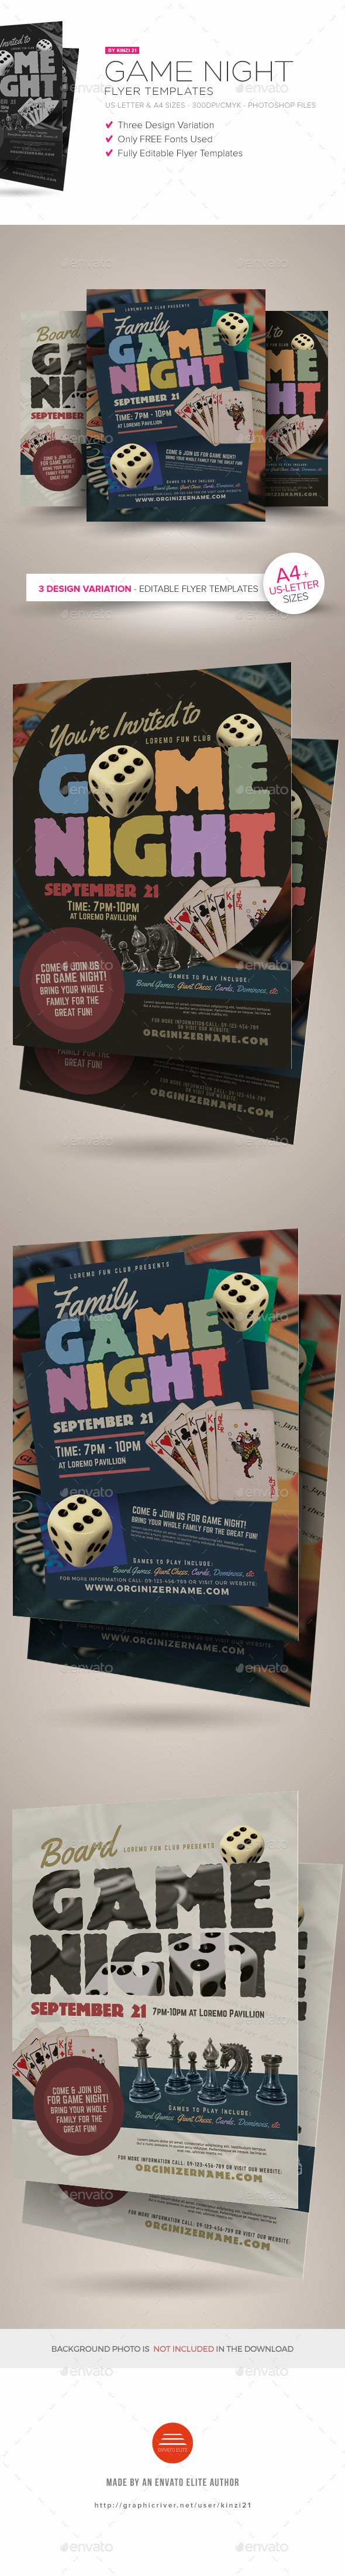 Game Night Flyer Template Fresh Game Night Flyer Templates by Kinzi21